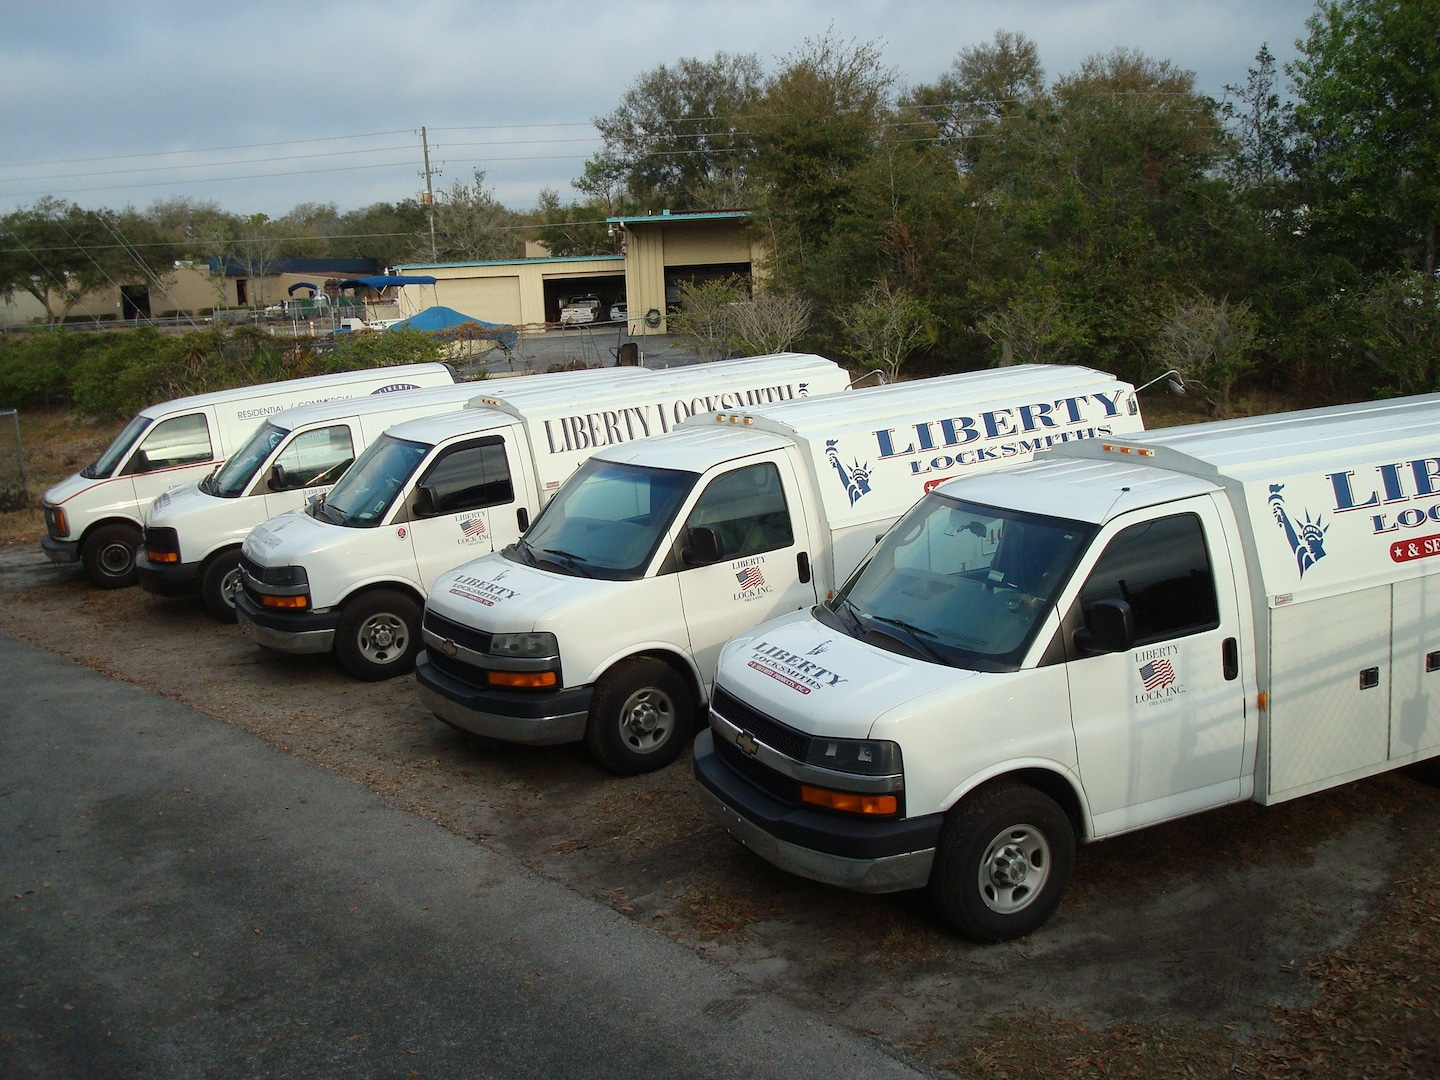 Liberty Locksmiths